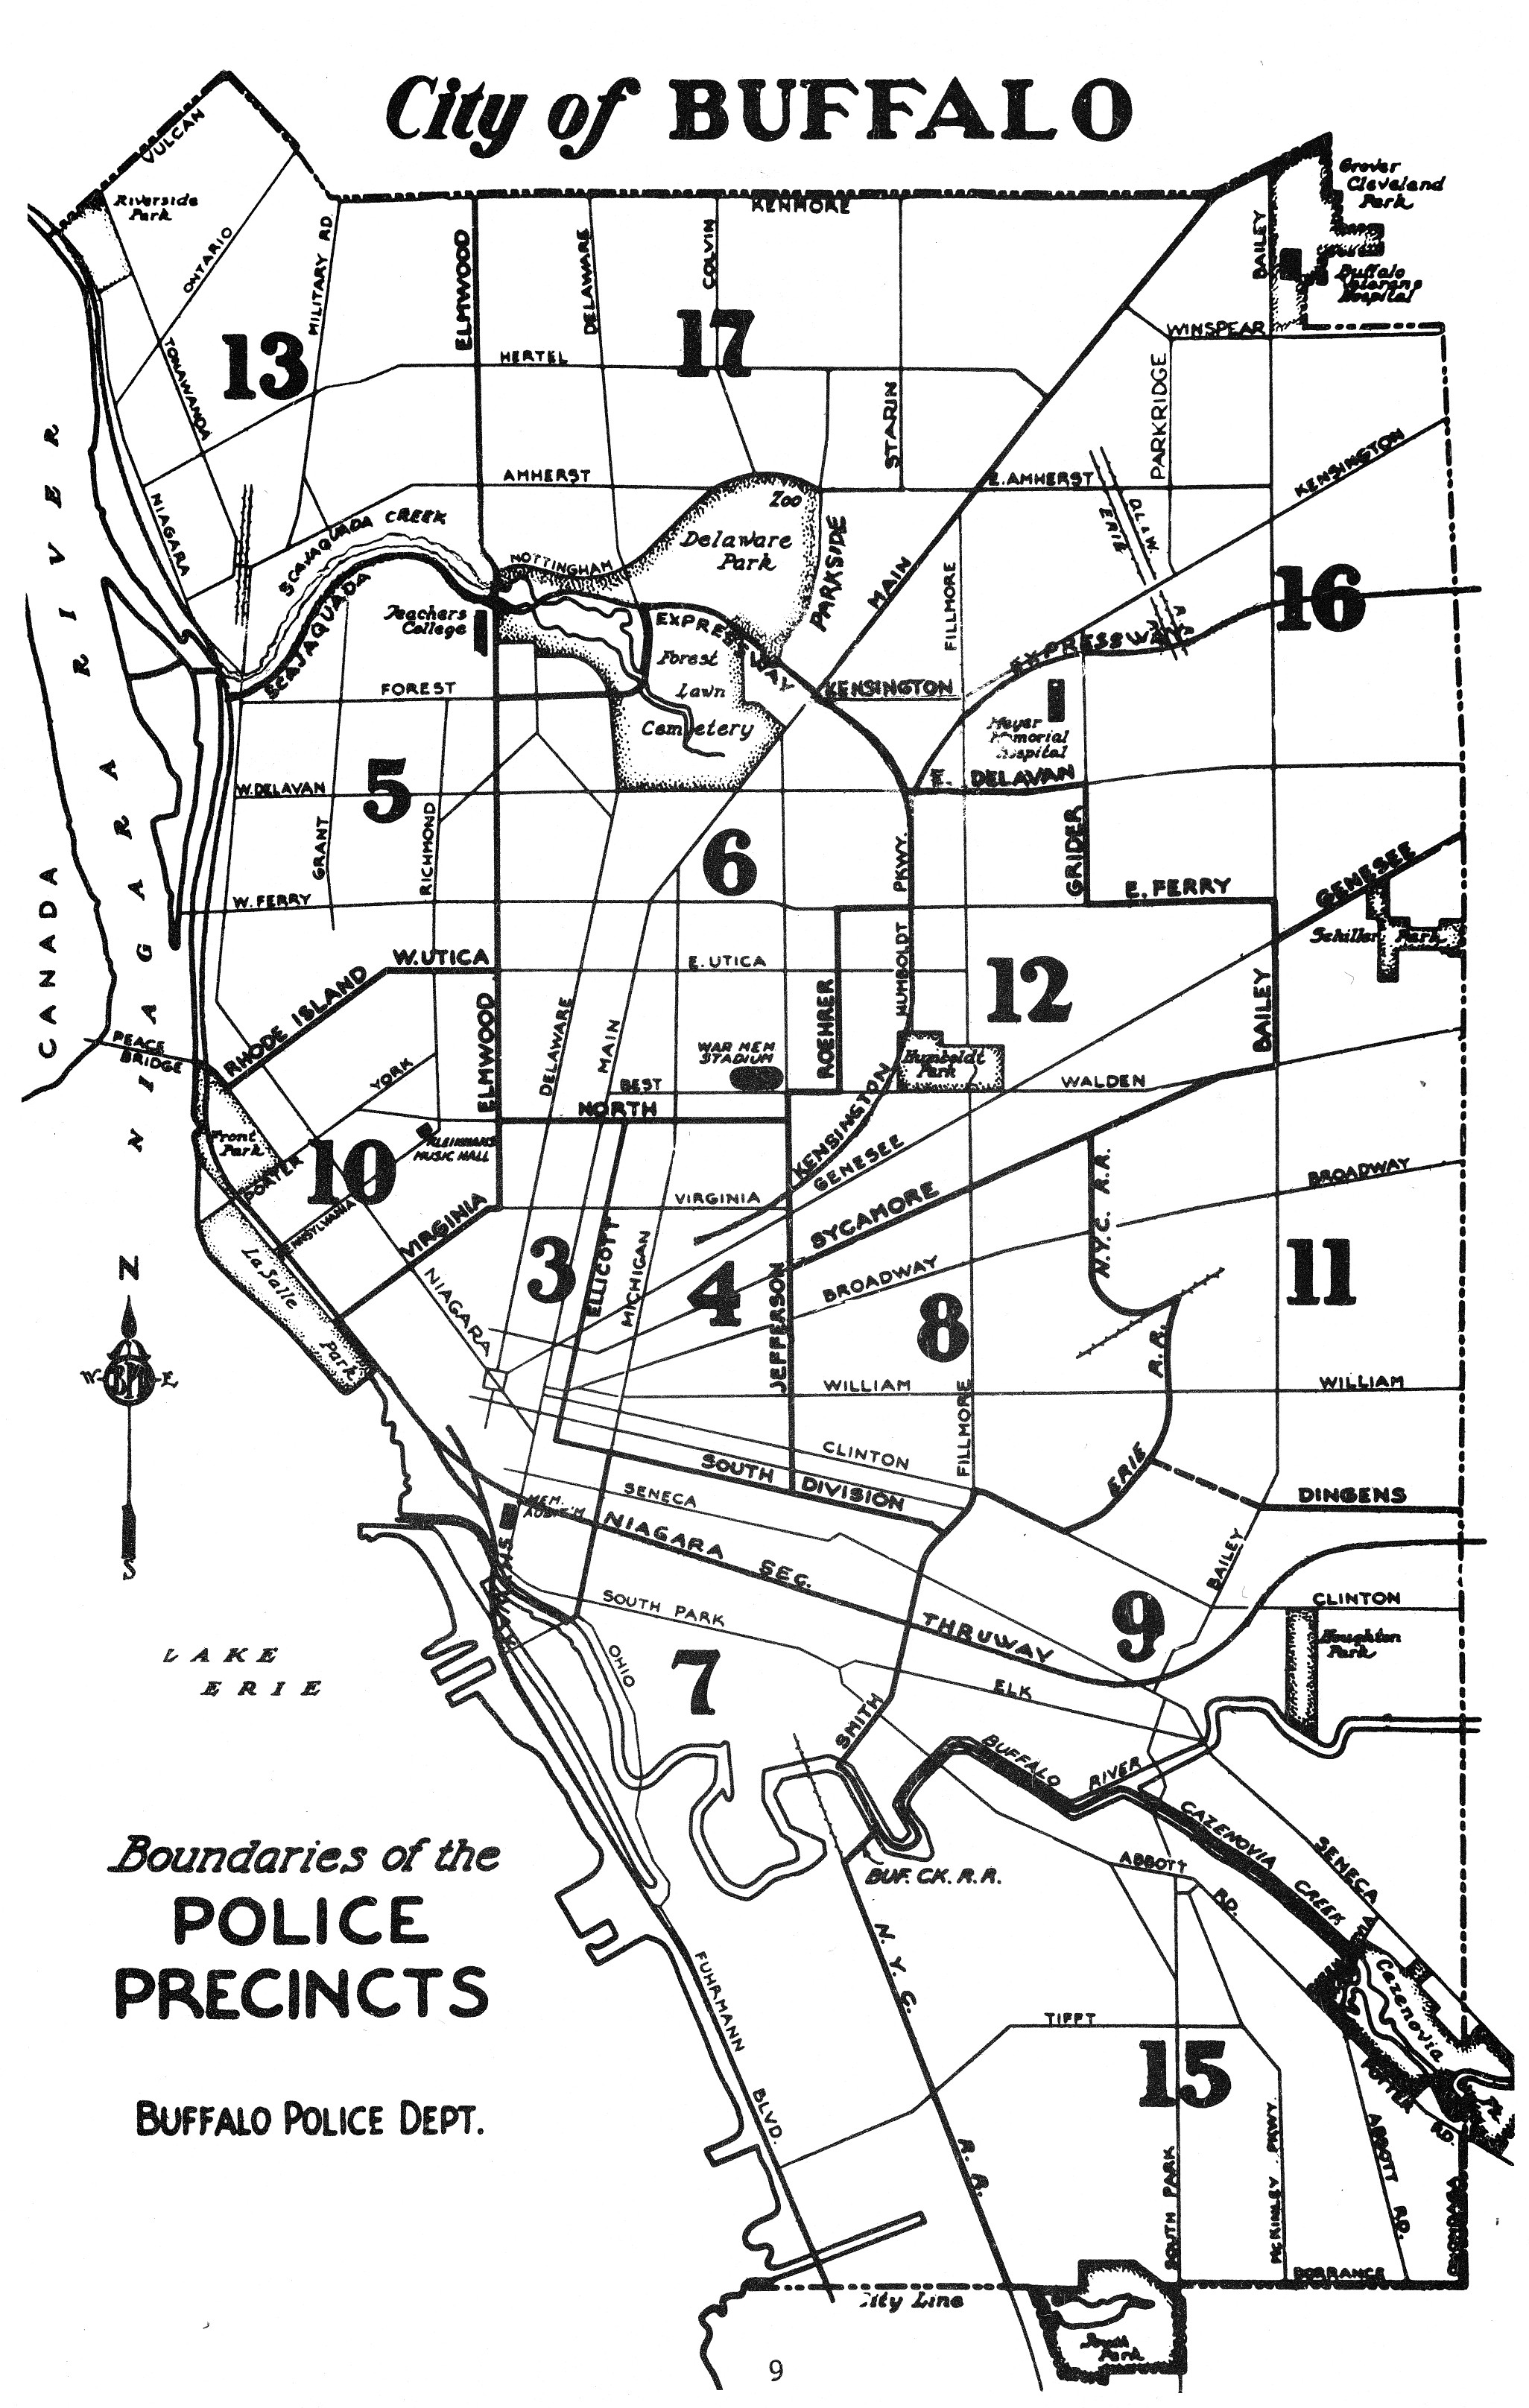 File:Buffalo Police Department Annual Report 1973 map.jpg ... on city of buffalo directory, city of buffalo logo, city of buffalo districts, city of buffalo people, city of buffalo tattoo, city of buffalo model, city of buffalo zip codes, city ny map, city md map, city of buffalo employment, city of buffalo seal, buffalo street map, buffalo waterfront map, village of round lake map, buffalo tourism map, city ga map, city of buffalo water, university of buffalo map, city of buffalo flag, buffalo bus map,